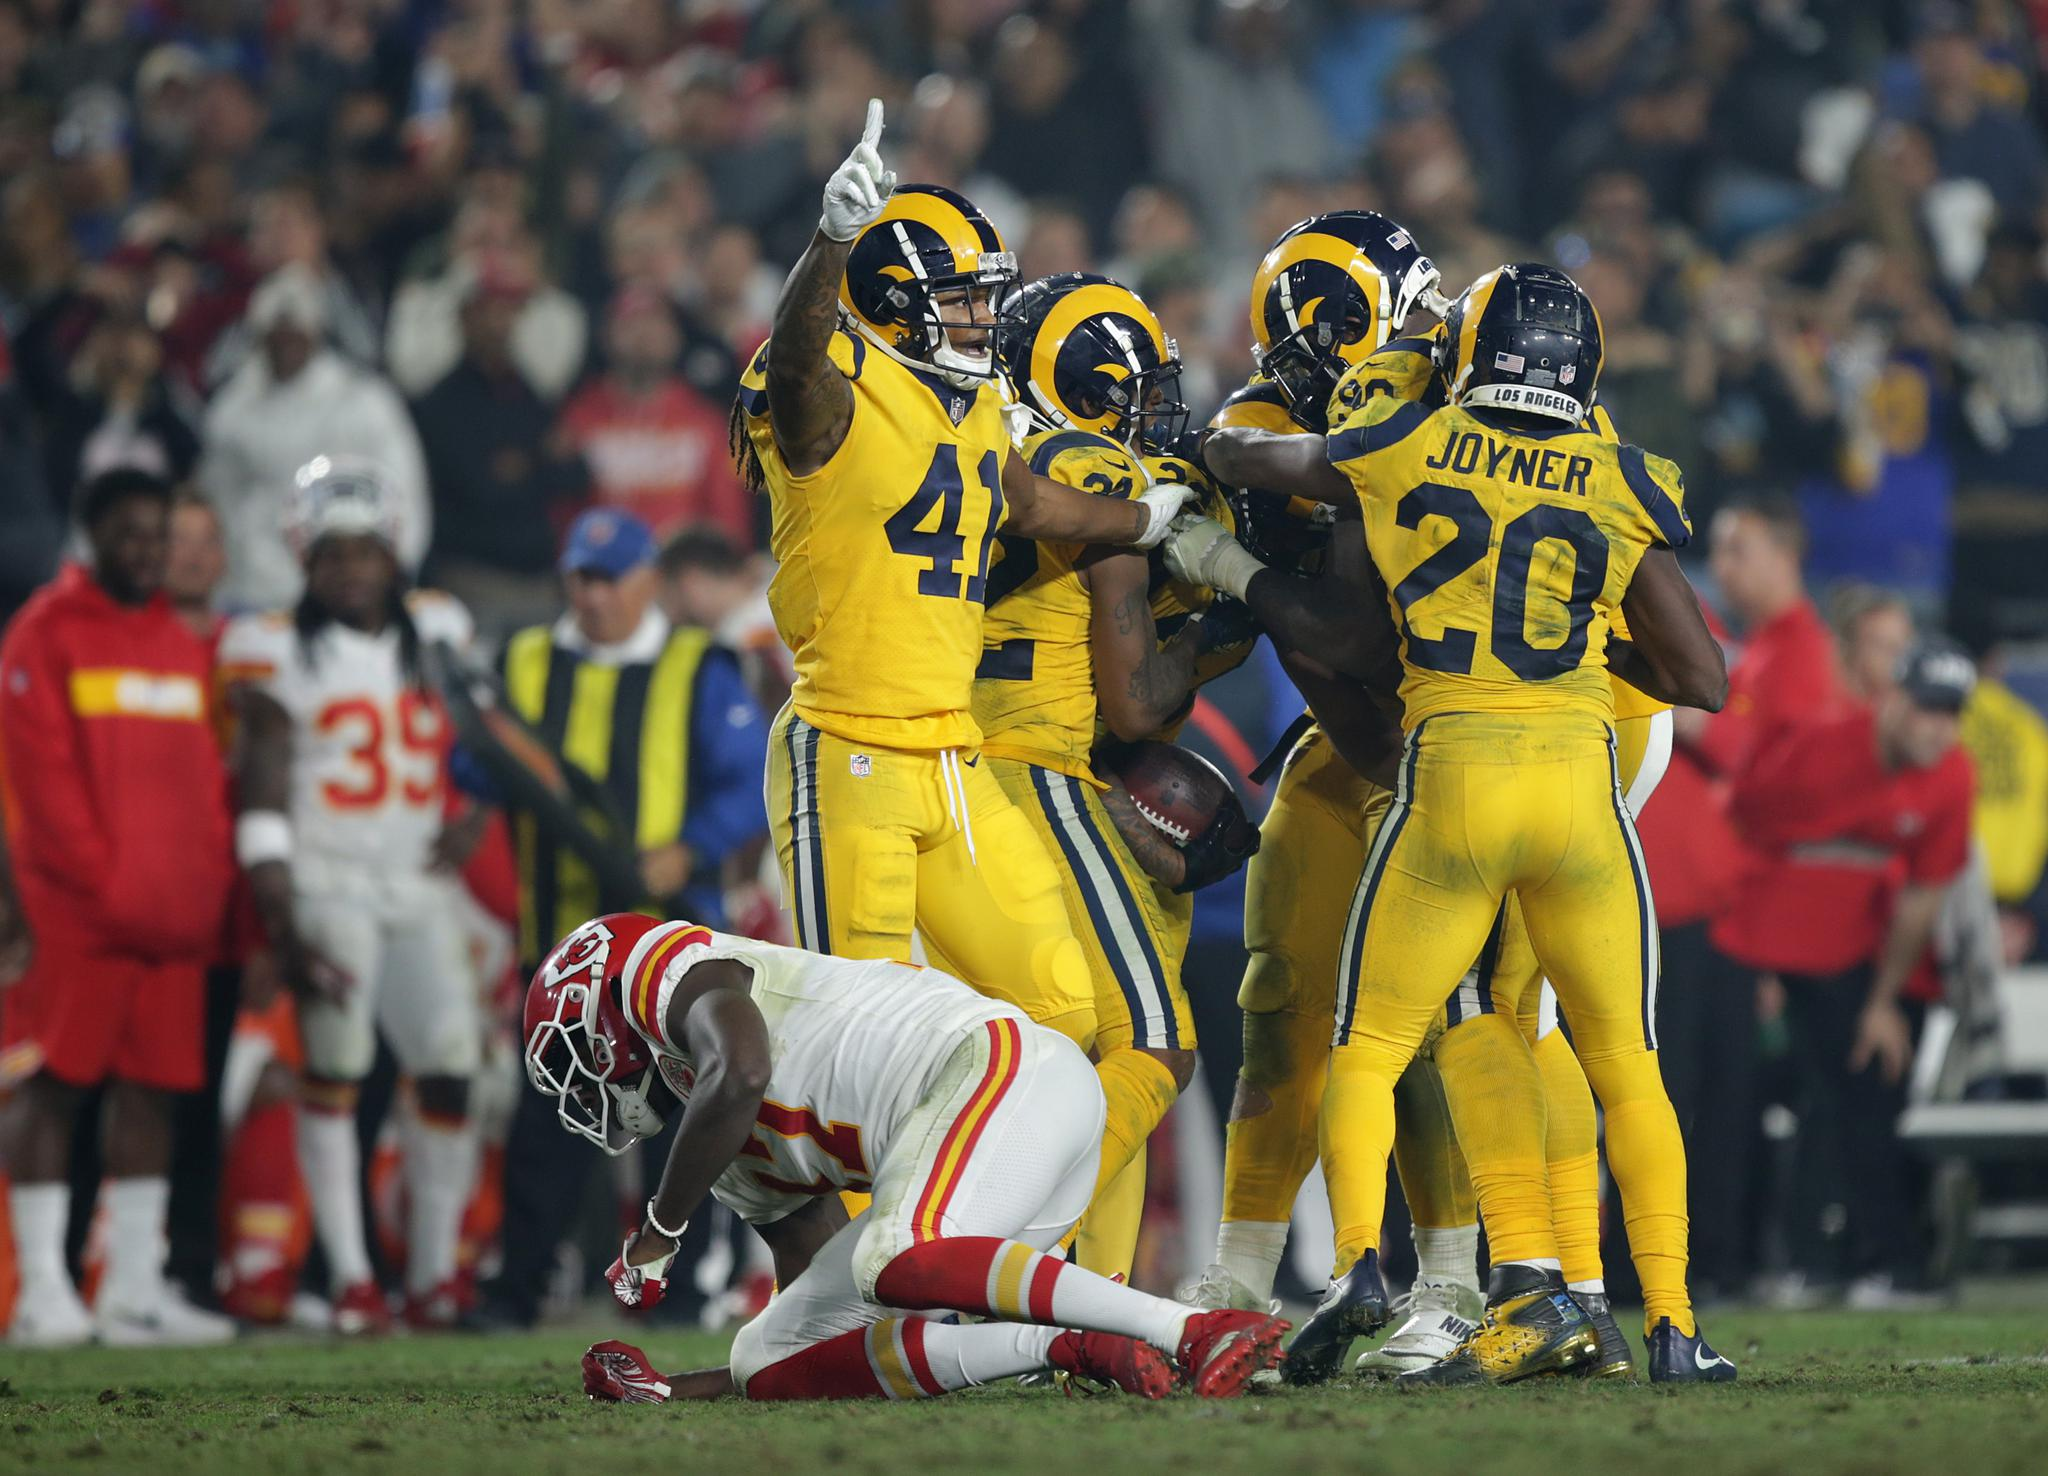 bb76e261 Rams' Game Isn't Just About Winning, But Giving LA A Boost | Scribd